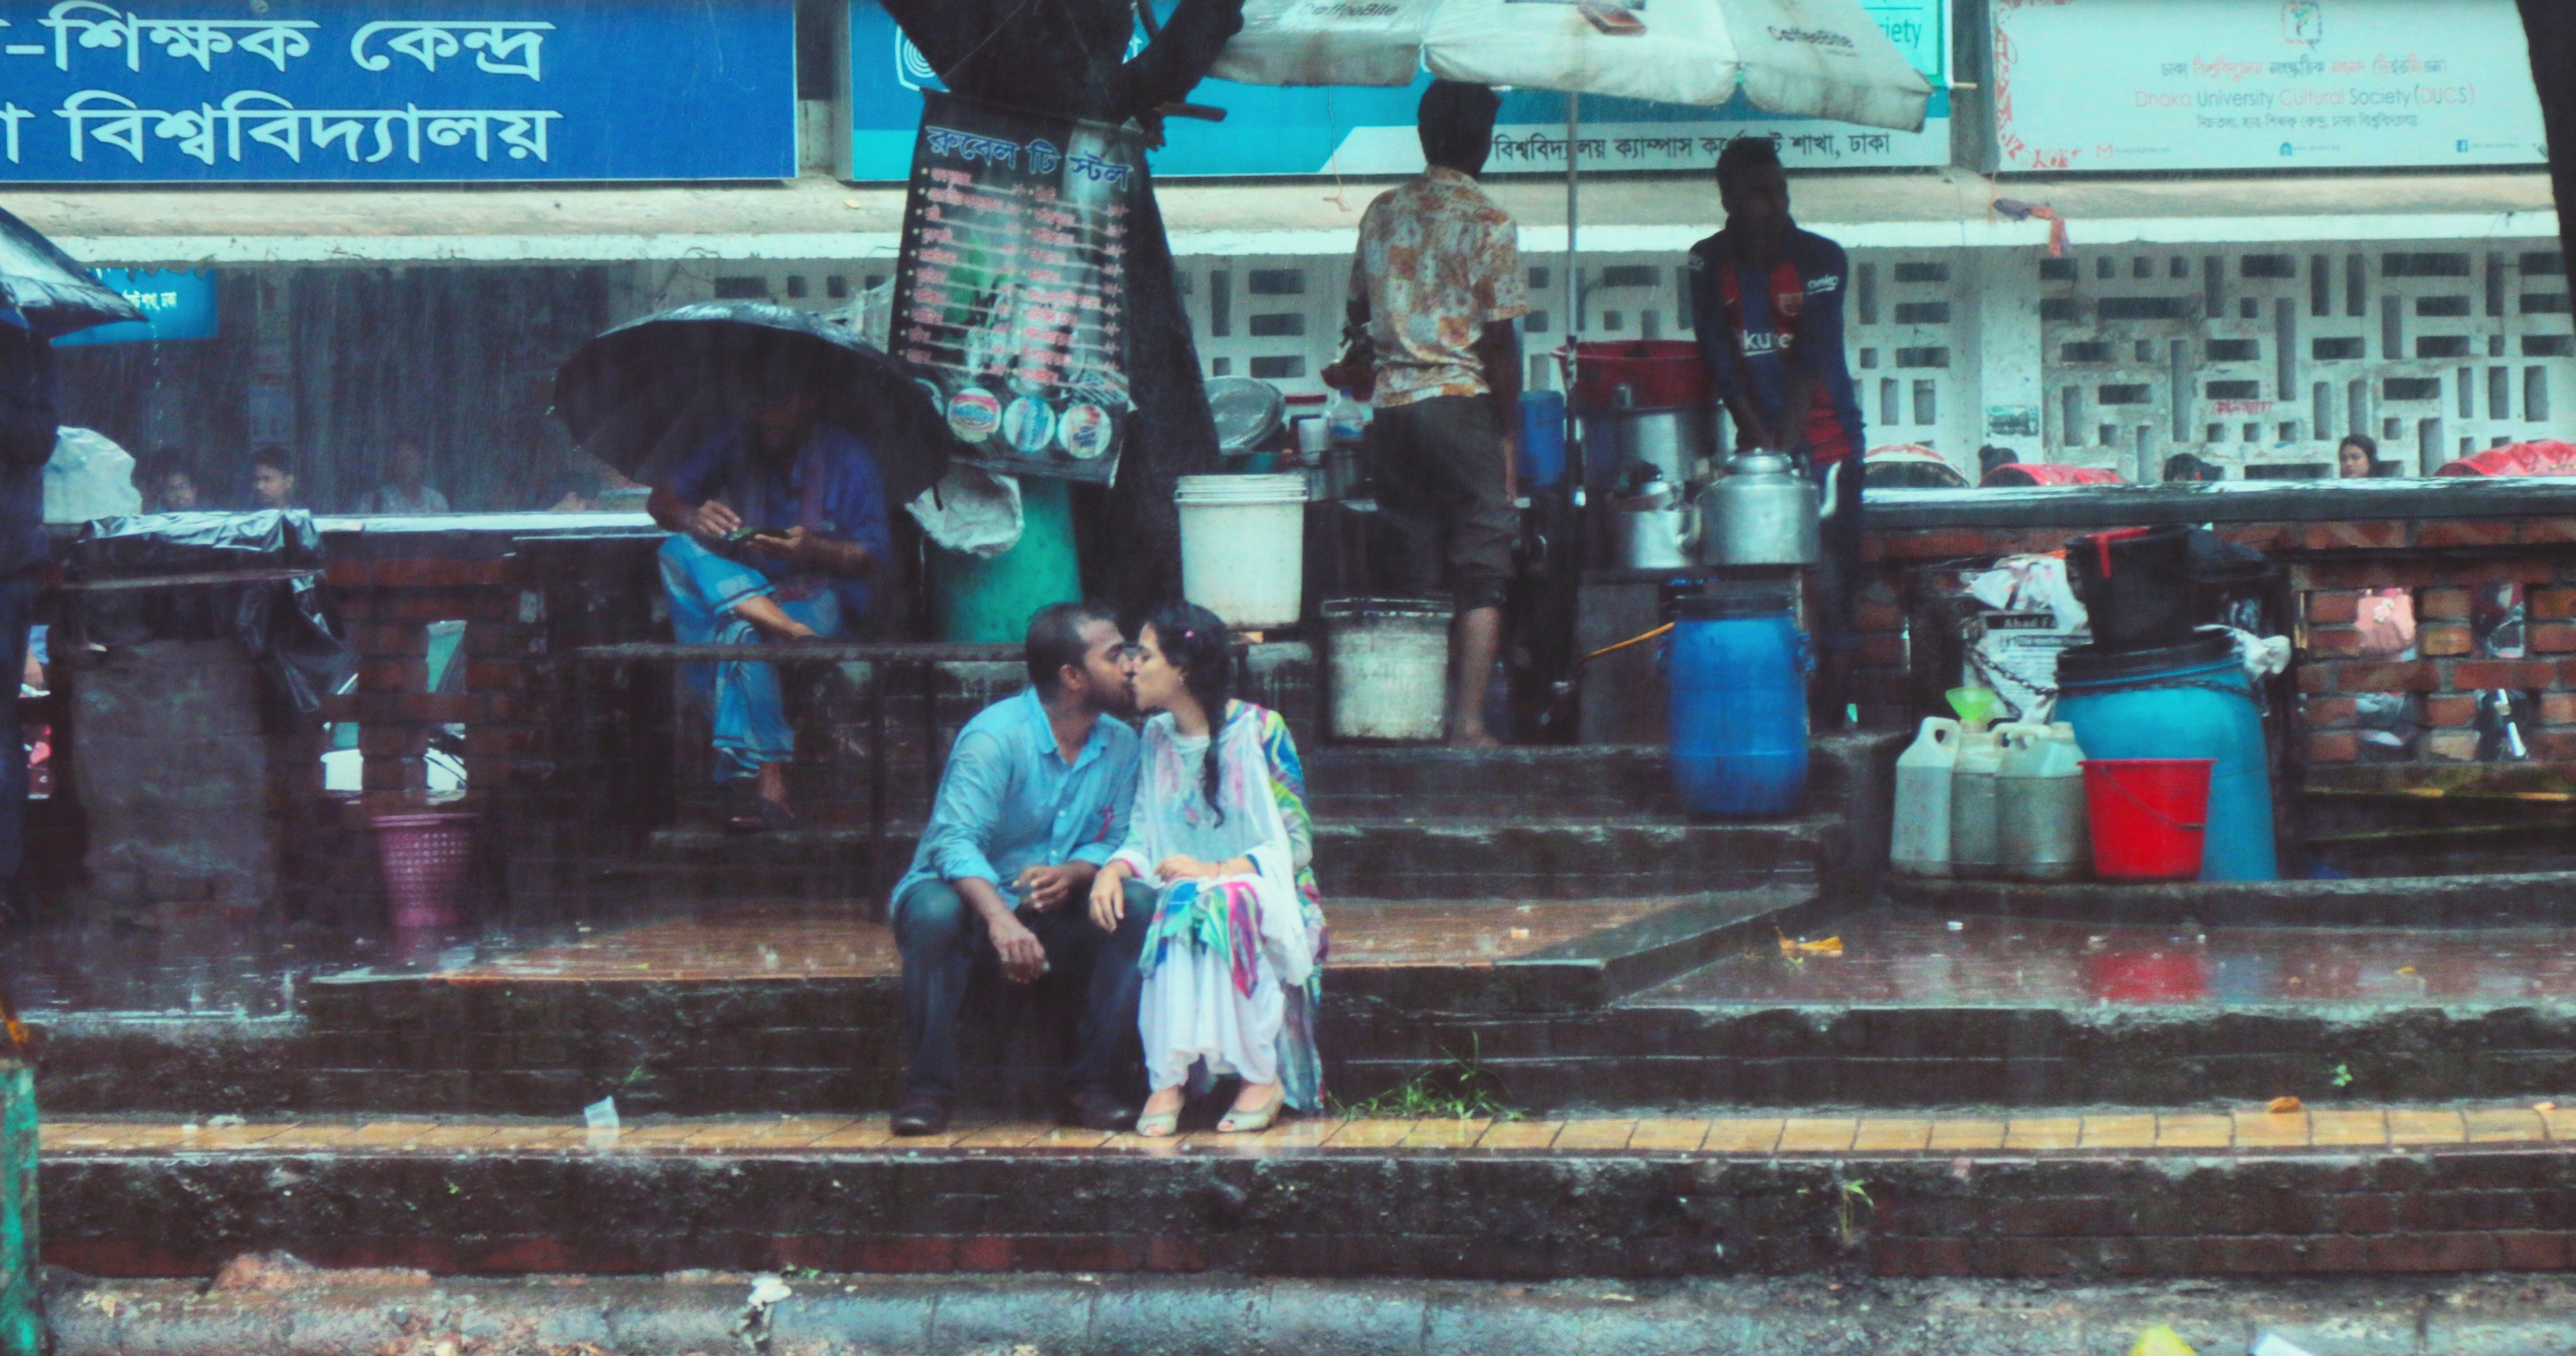 A viral photo of lovers kissing offended many in Bangladesh  The man